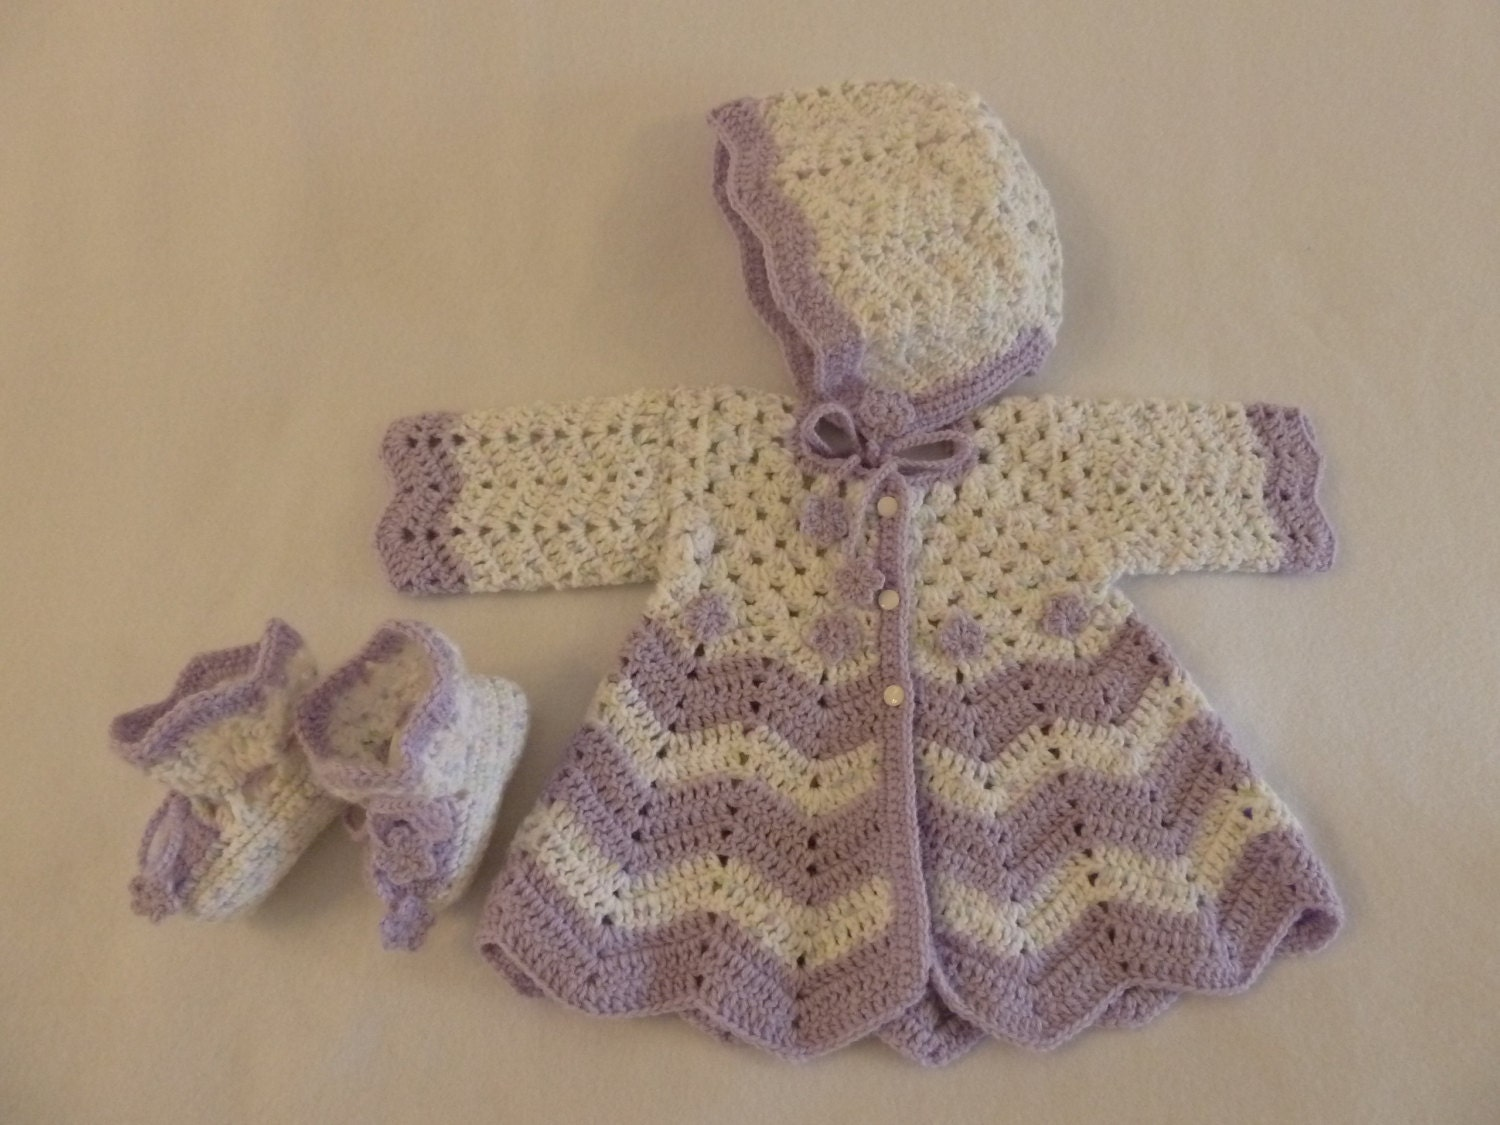 Lavendar and Pastel Crocheted Baby Sweater by ...